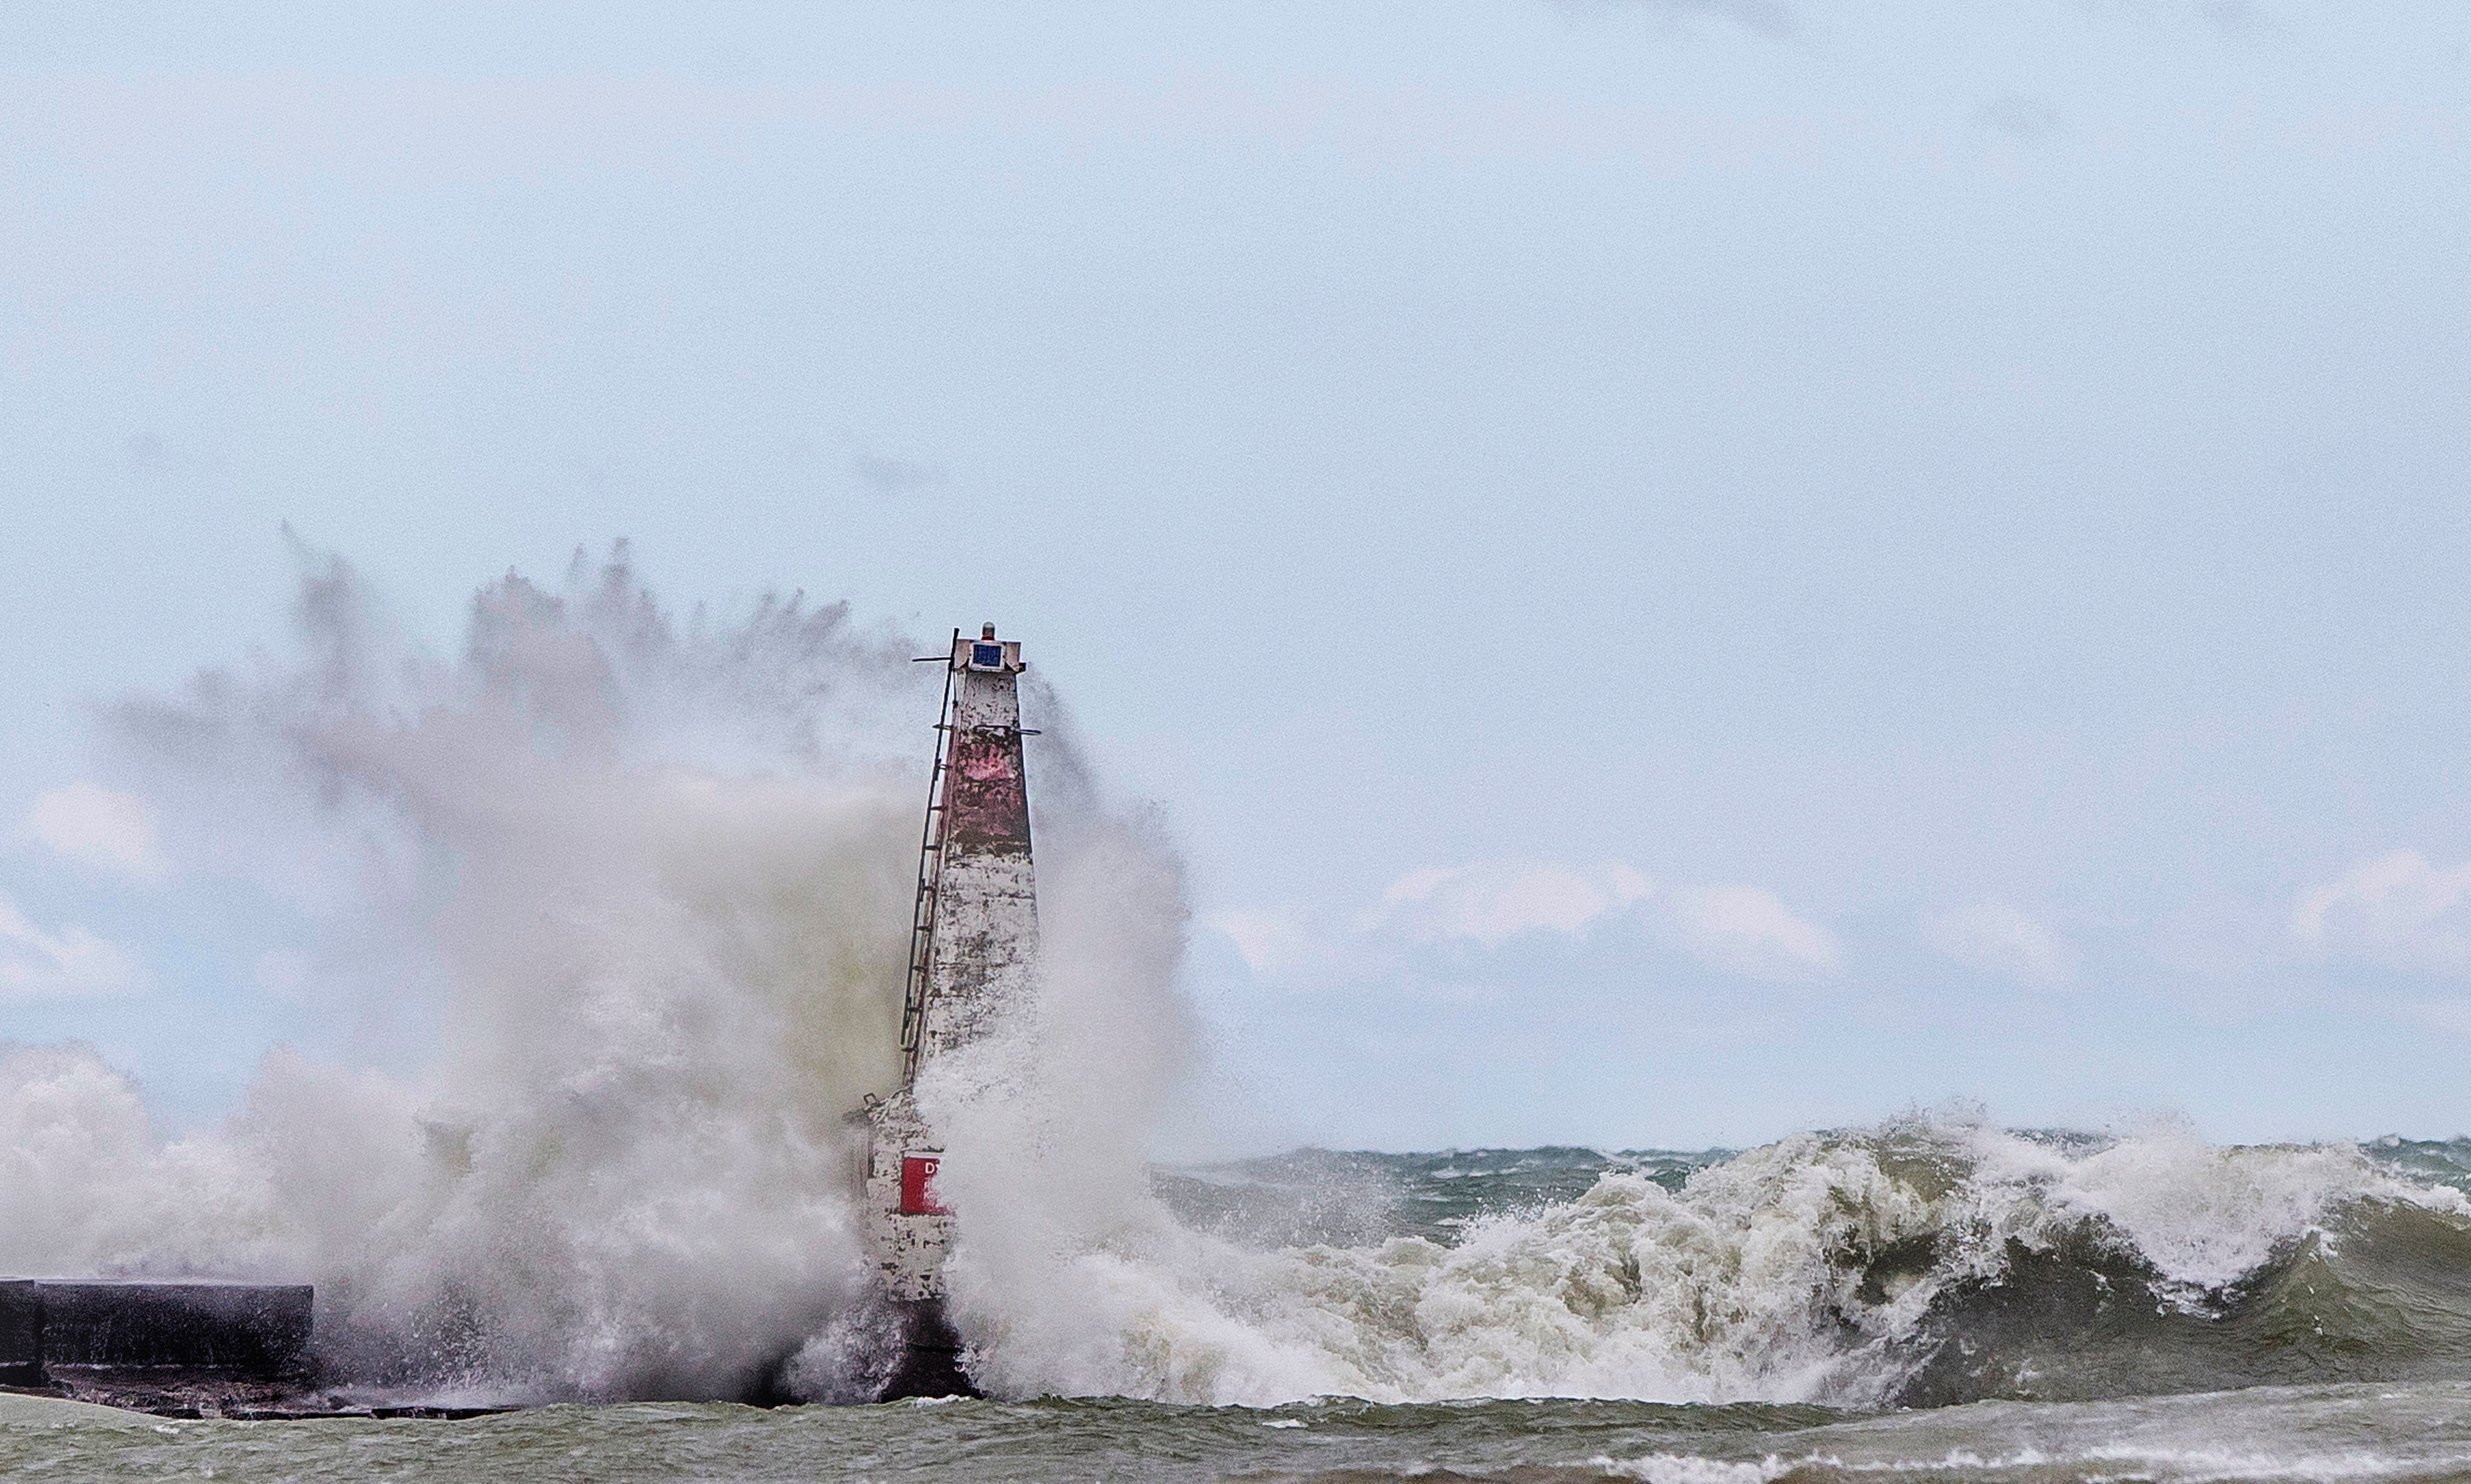 FILE - In this April 6, 2017 file photo, big waves crash against a breakwater light as strong winds create dangerous conditions on Lake Michigan, at Washington Park in Michigan City, Ind. Federal officials predict surging water levels across the Great Lakes and record highs in Lakes Superior and Erie over the next six months. A report Monday, May 6, 2019 from the U.S. Army Corps of Engineers says the lakes have been rising steadily for several years and are getting an extra boost as winter's melting snow mingles with recent heavy rainfall. It's a remarkable turnaround from early this decade, when lake levels were slumping and some hit record lows. (Robert Franklin/South Bend Tribune via AP, File)